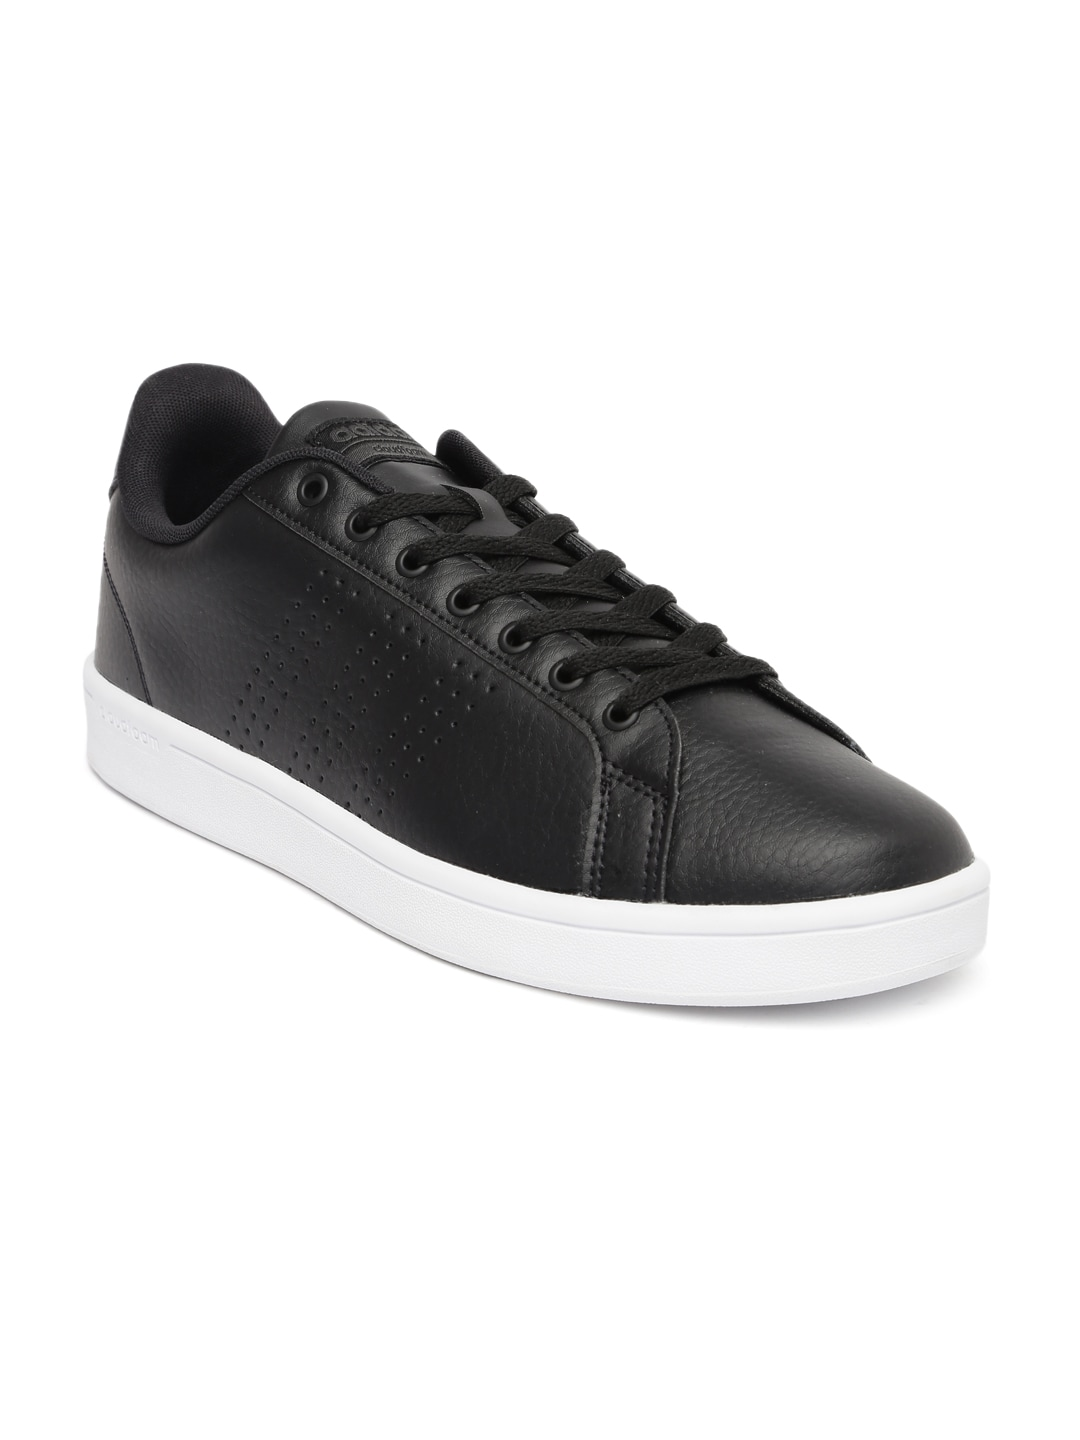 quality design 4637d 6d877 Adidas aw3915 Neo Men Black Solid Leather Cloudfoam Advantage Clean  Sneakers- Price in India